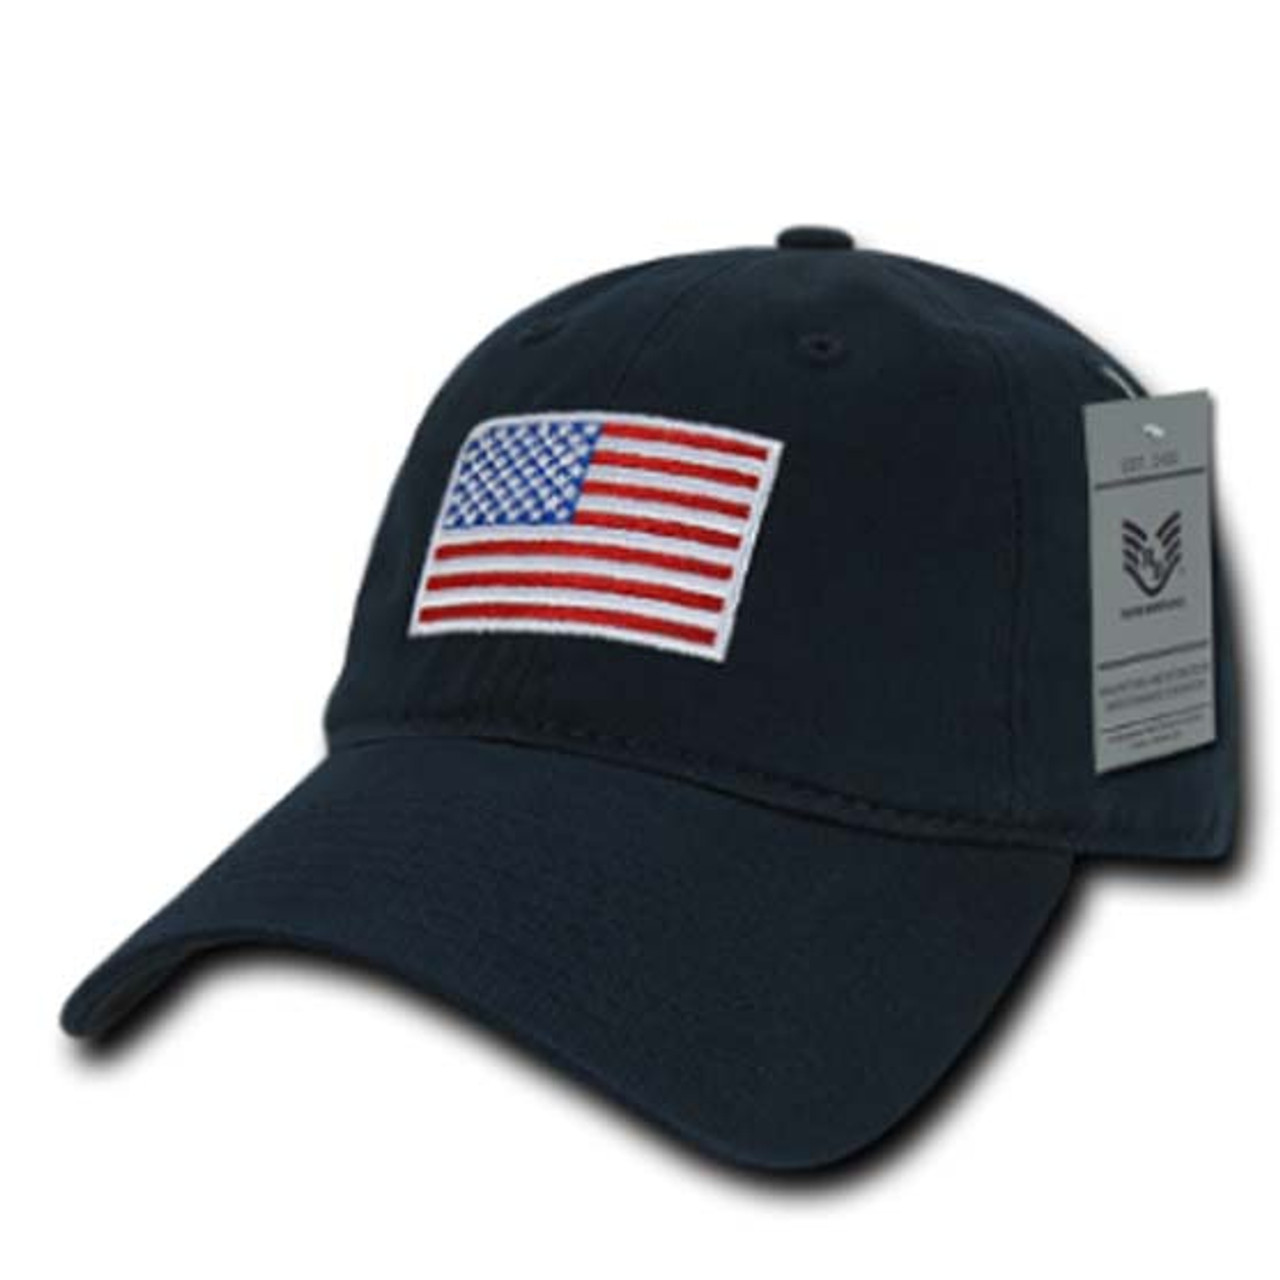 Navy Red White   Blue US American Flag United States America Polo Tonal  Baseball Hat Cap b1ab432a2f2